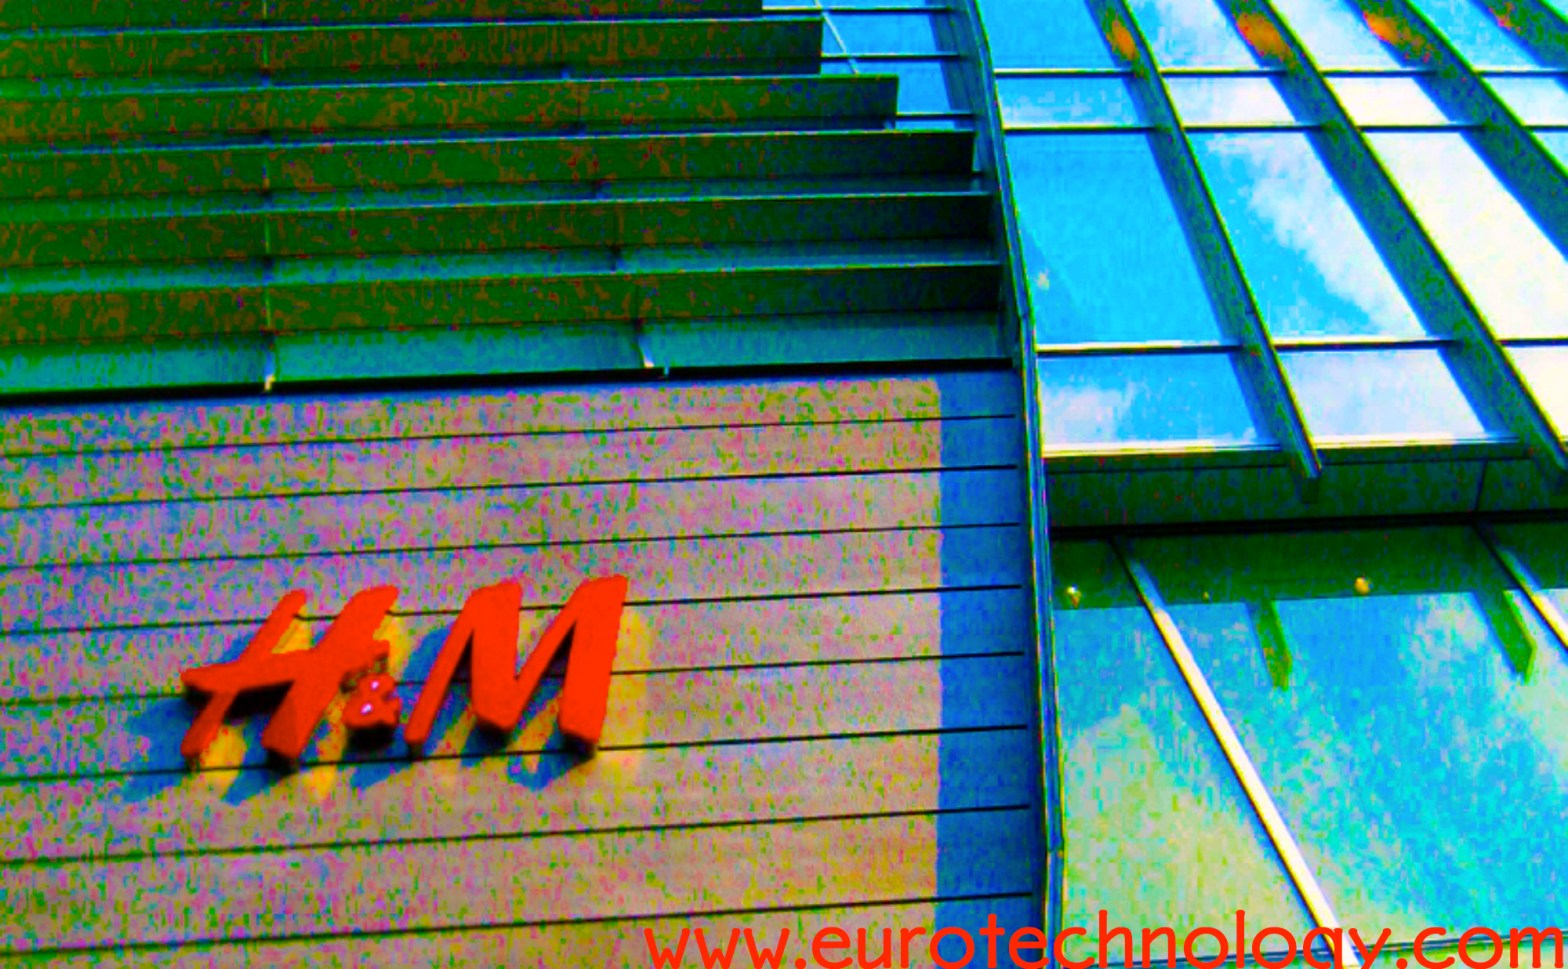 H&M Japan entry – H&M opened the first store in Japan in Ginza on September 13, 2008